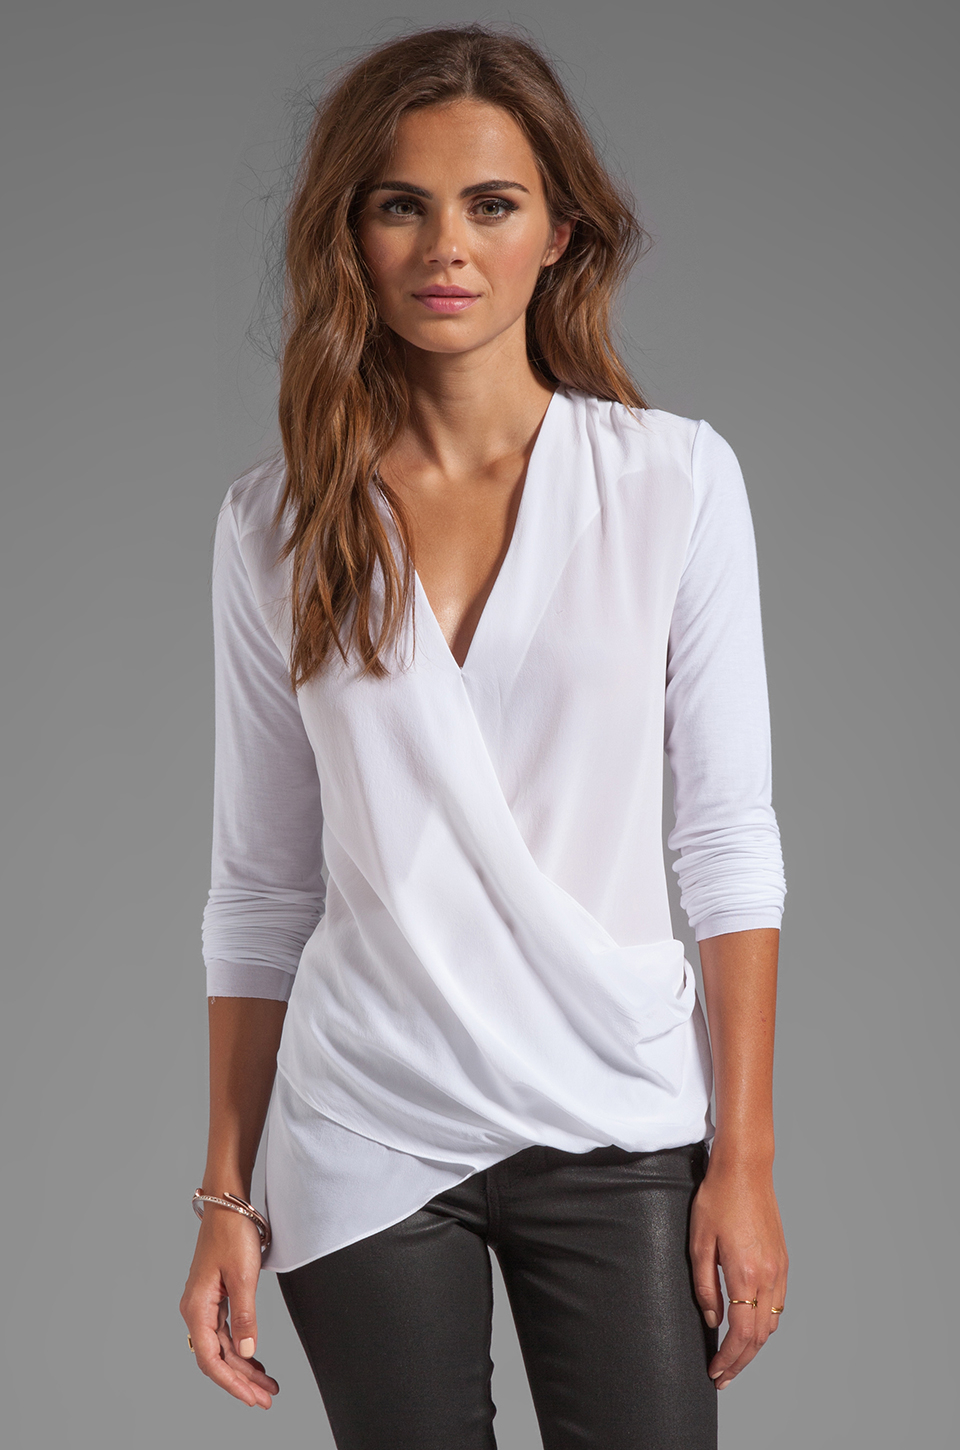 b1a2f5628 Ladies White Wrap Front Blouse « Alzheimer's Network of Oregon